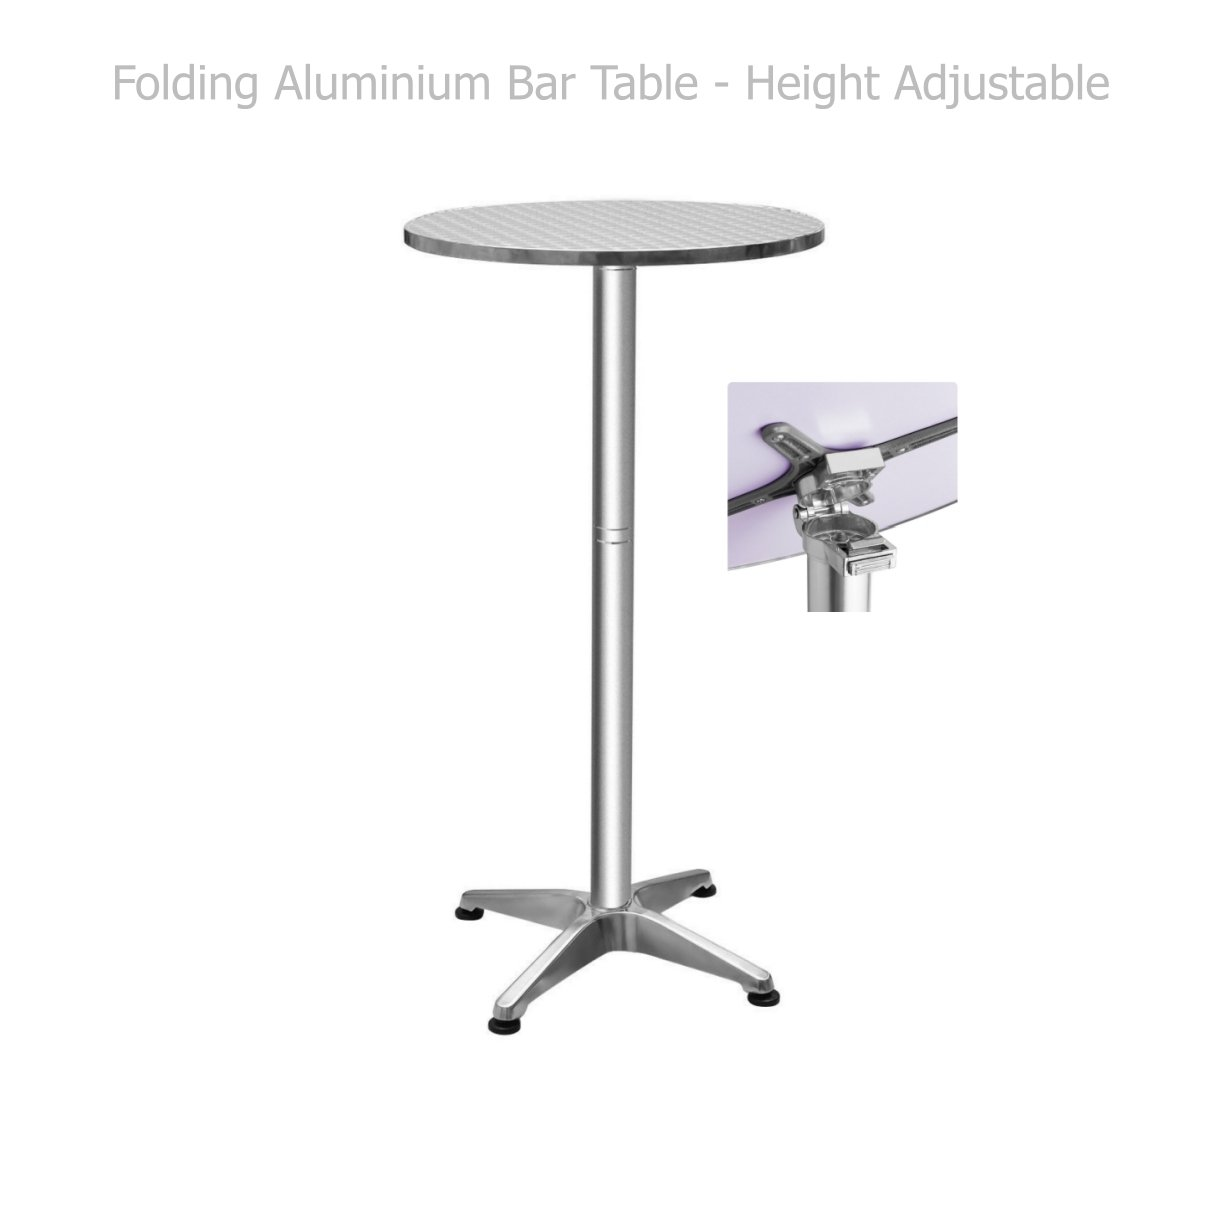 Folding Aluminium Bar Table Height Adjustable Commercial Residential Waterproof UV Resistant Home office Kitchen Indoor Outdoor Furniture #1382